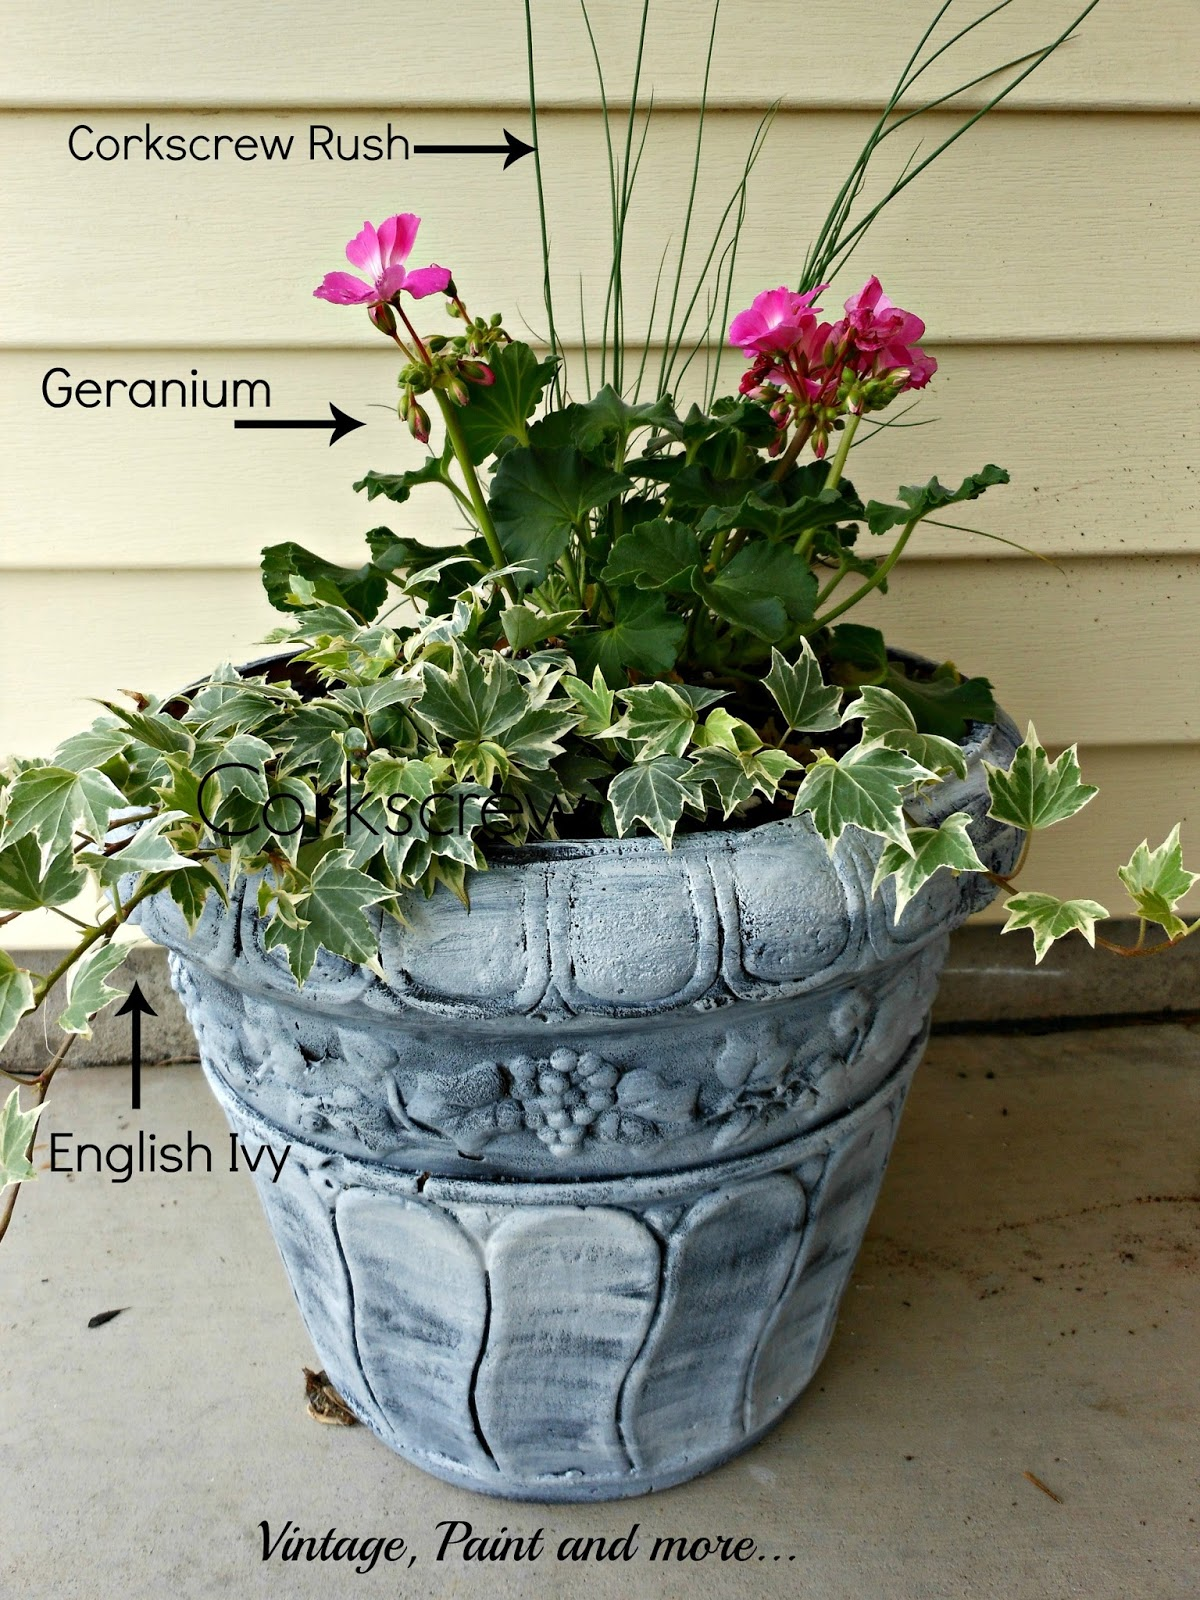 Vintage, Paint and more... container garden made with sun loving plants